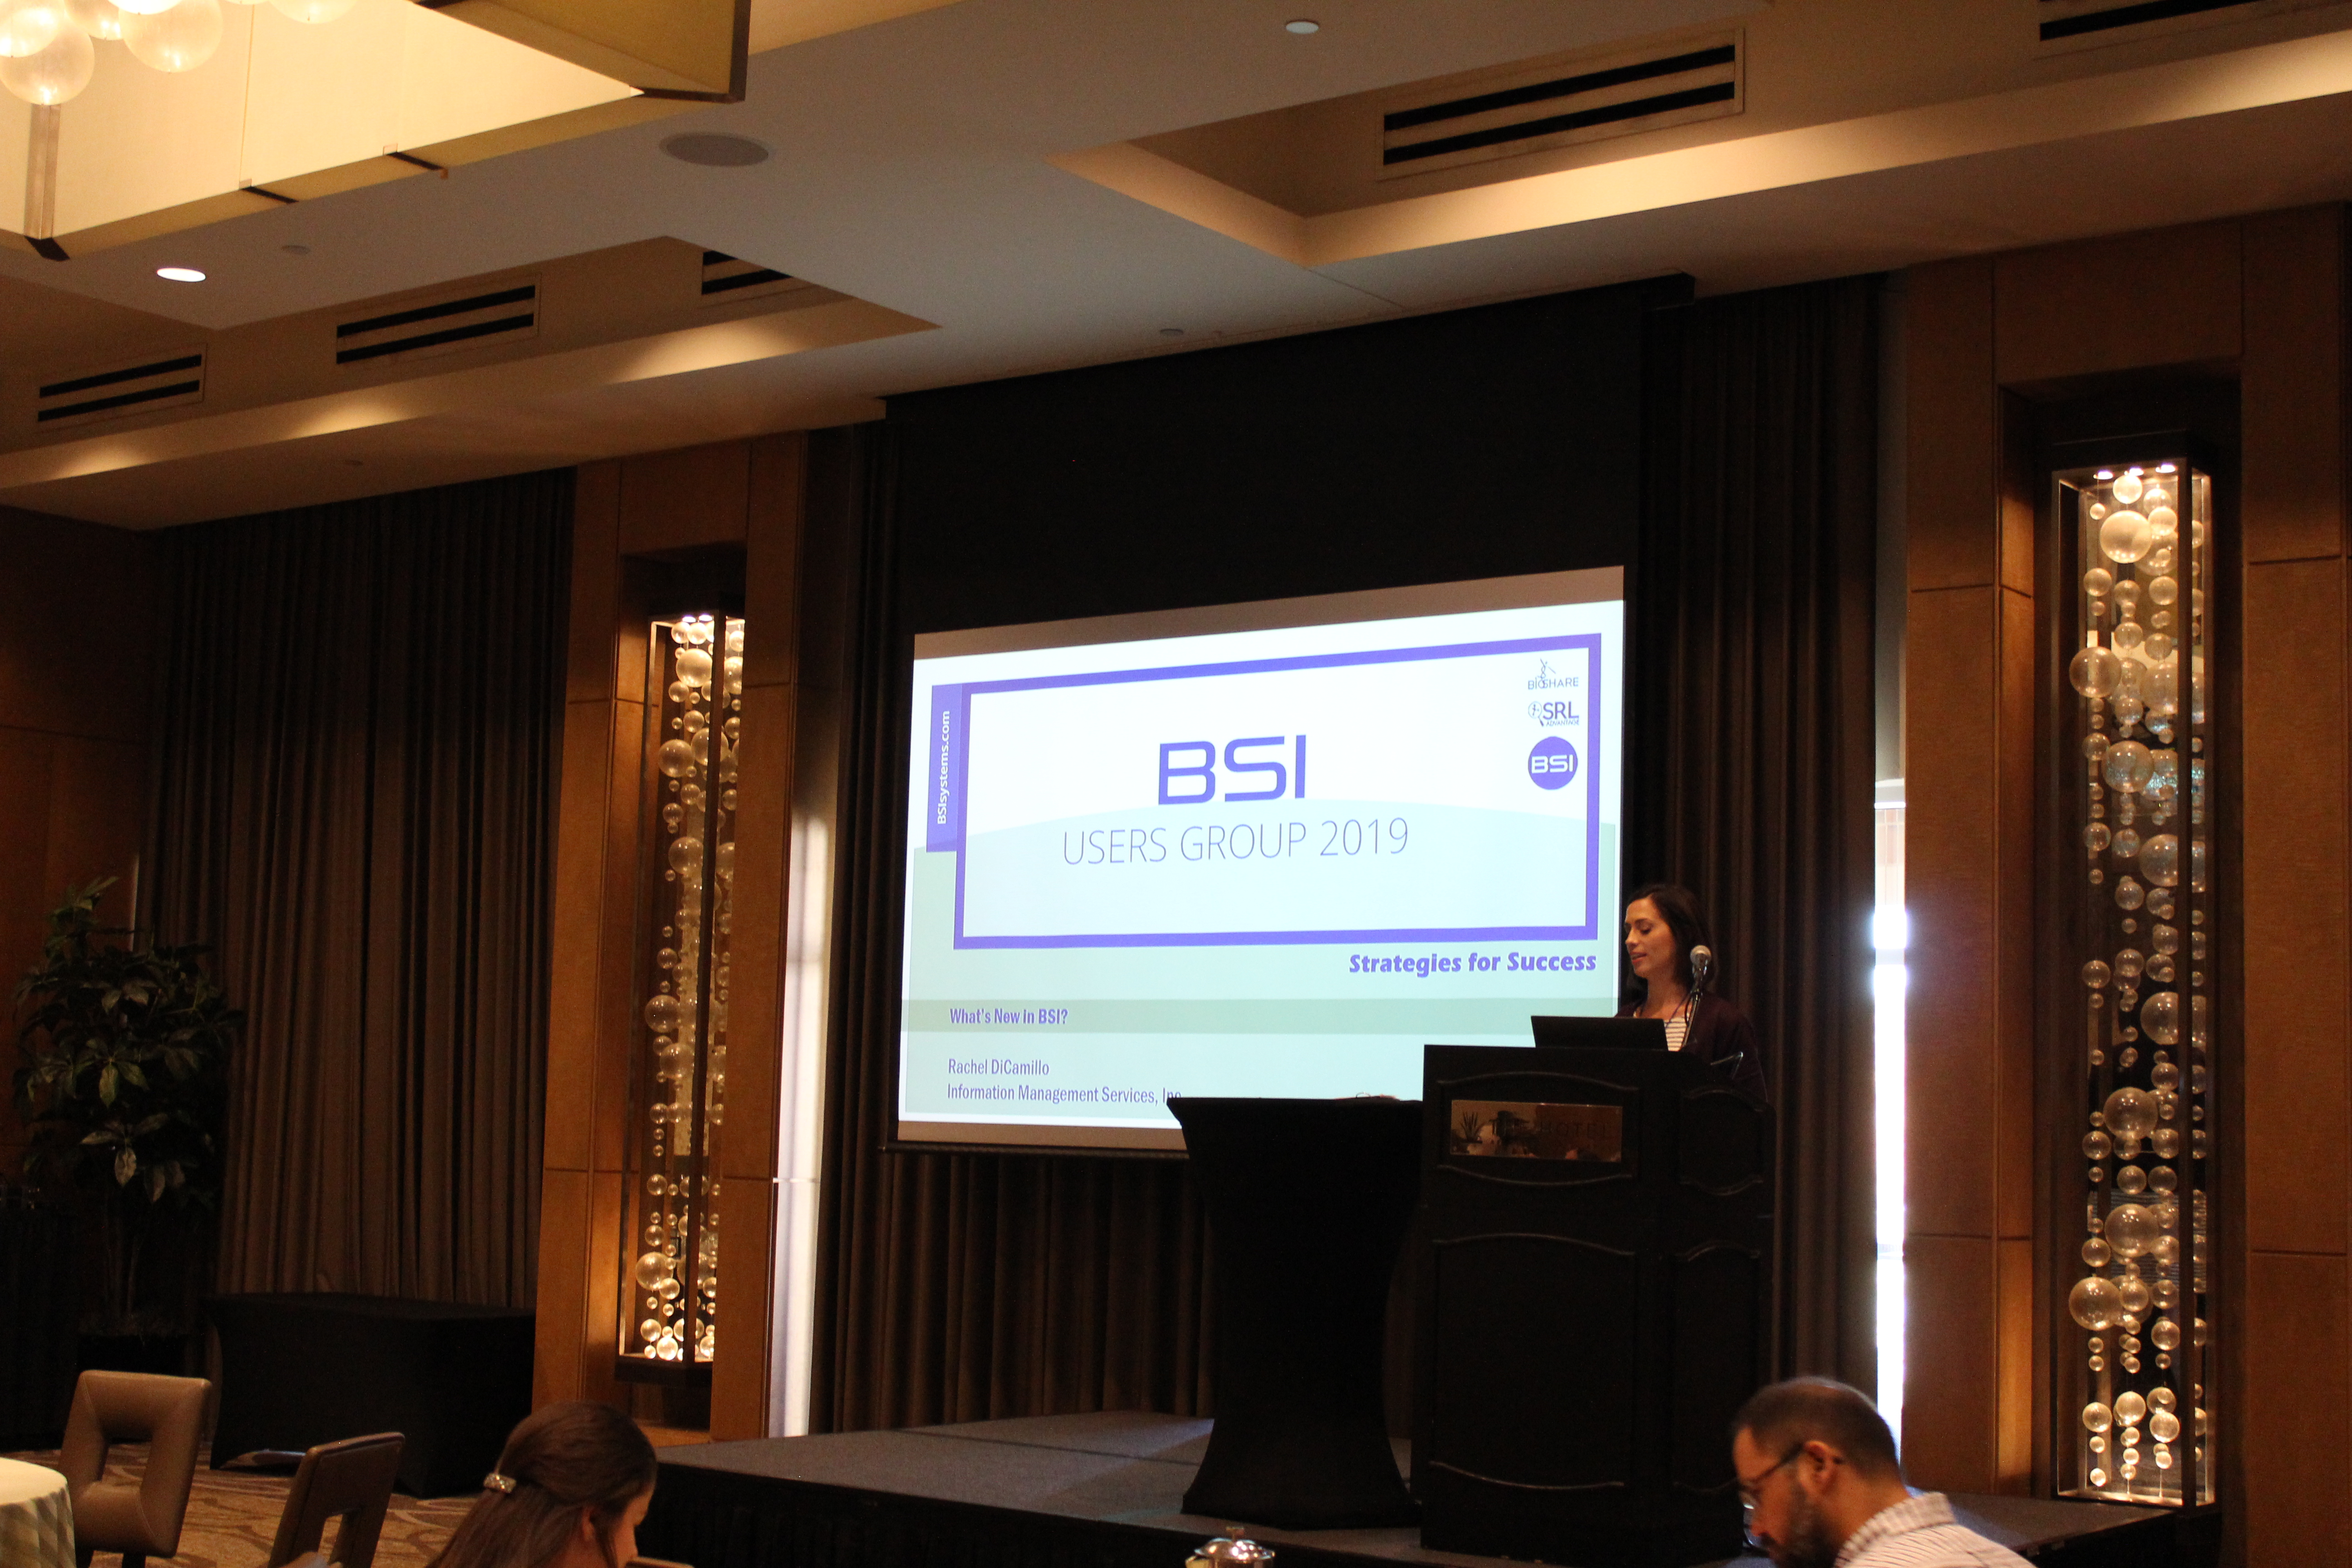 What's new in BSI?